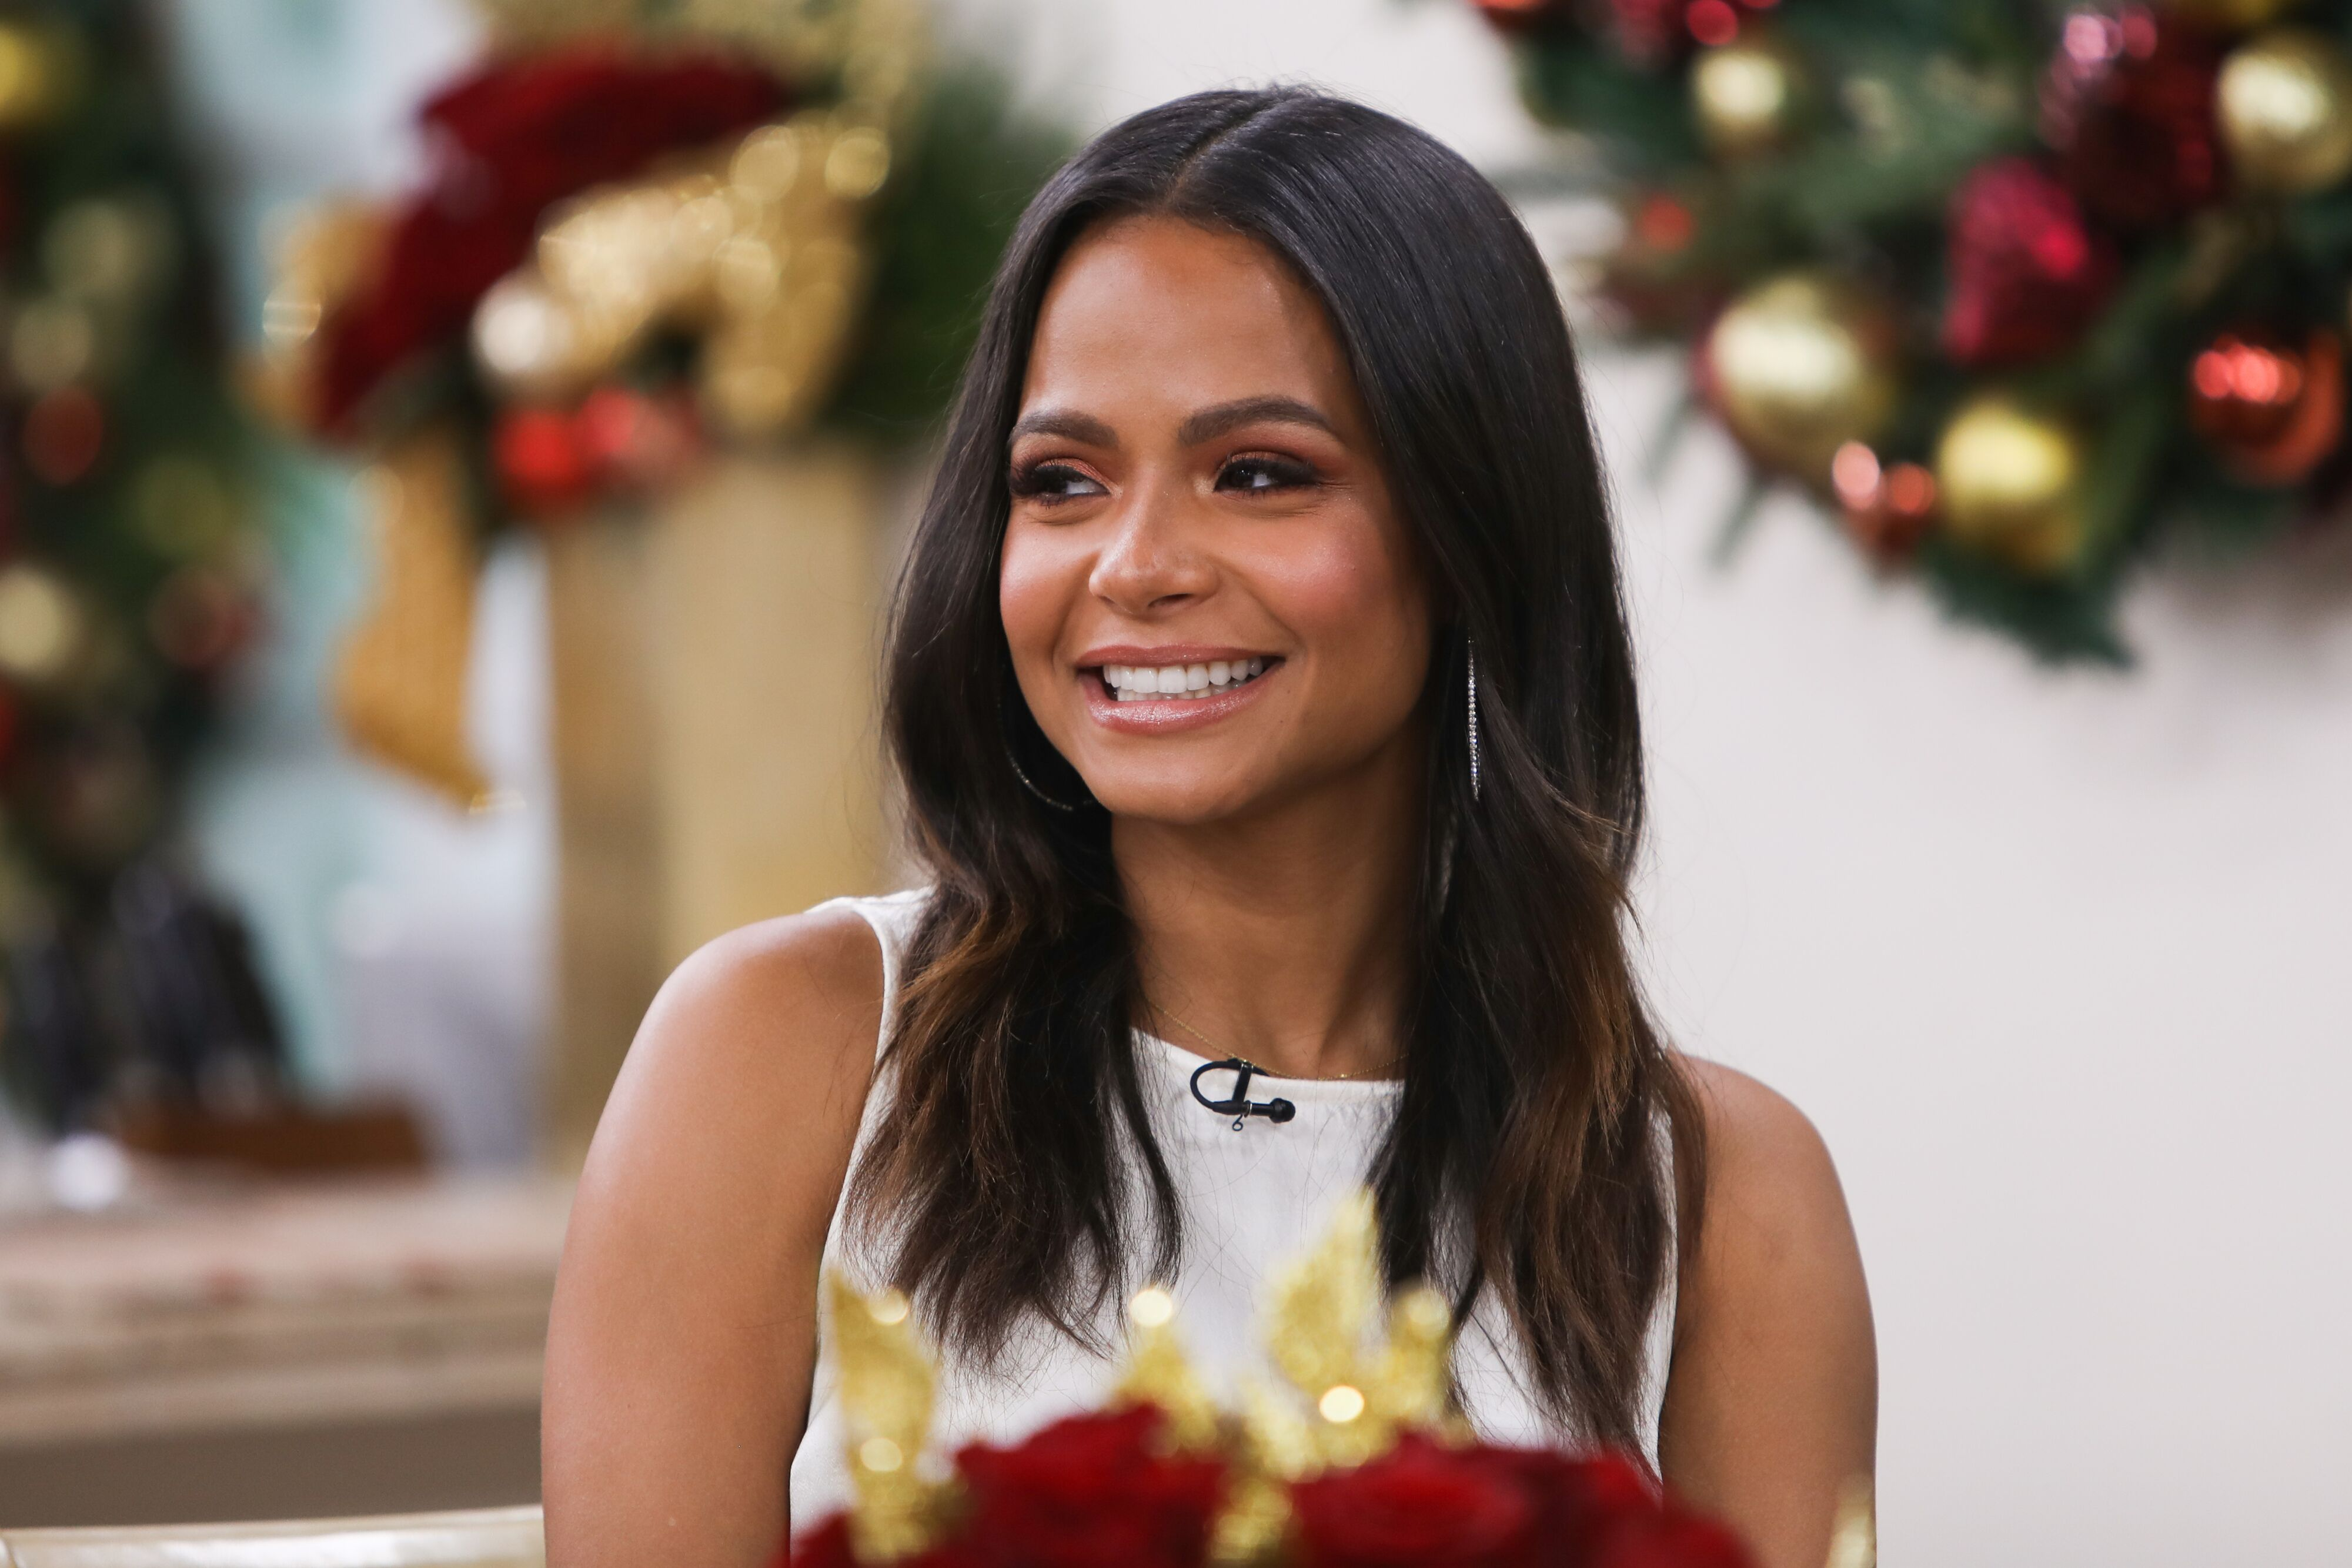 Christina Milian flashes a smile at a formal event | Source: Getty Images/GlobalImagesUkraine